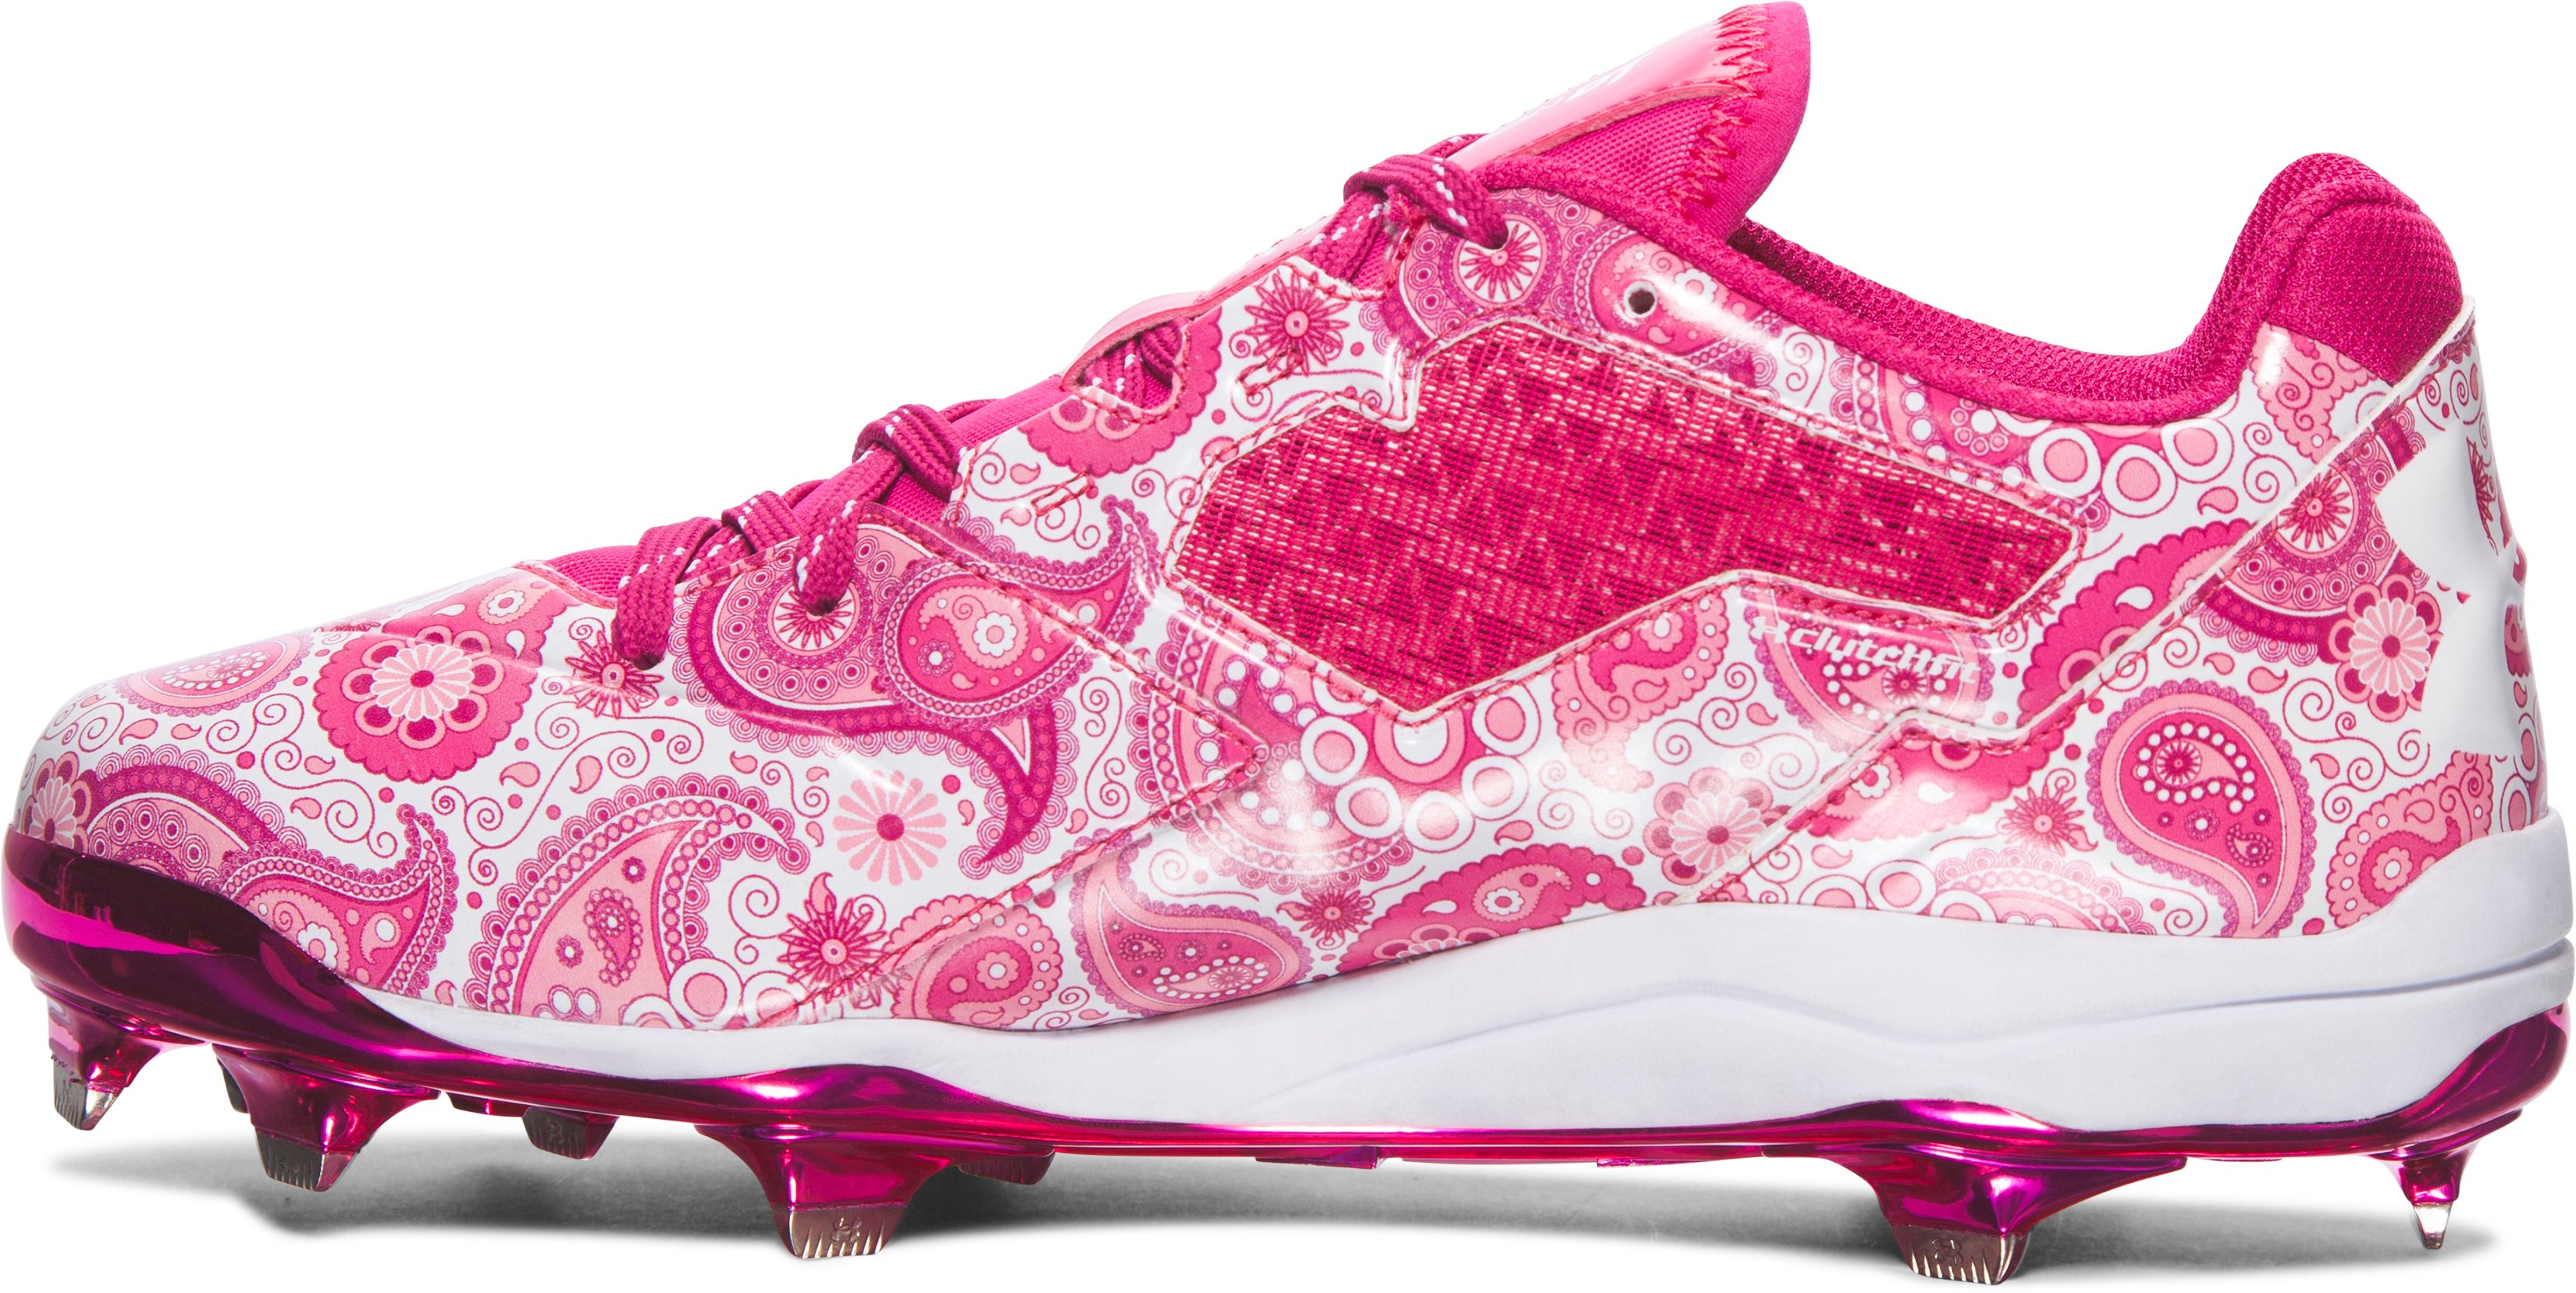 Men's UA Mother's Day Edition DiamondTips Baseball Cleats, Tropic Pink,